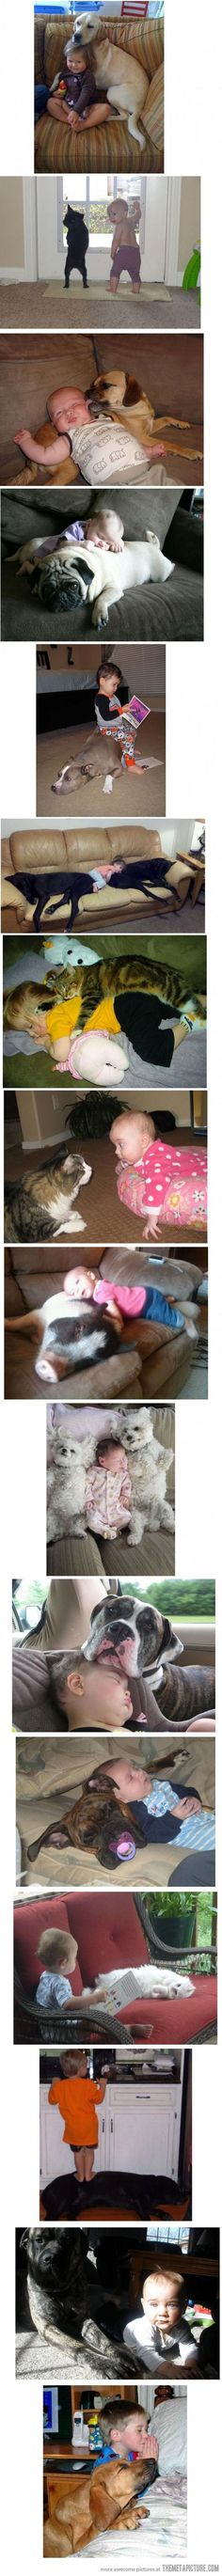 Kids and their pets...  These are too adorable!